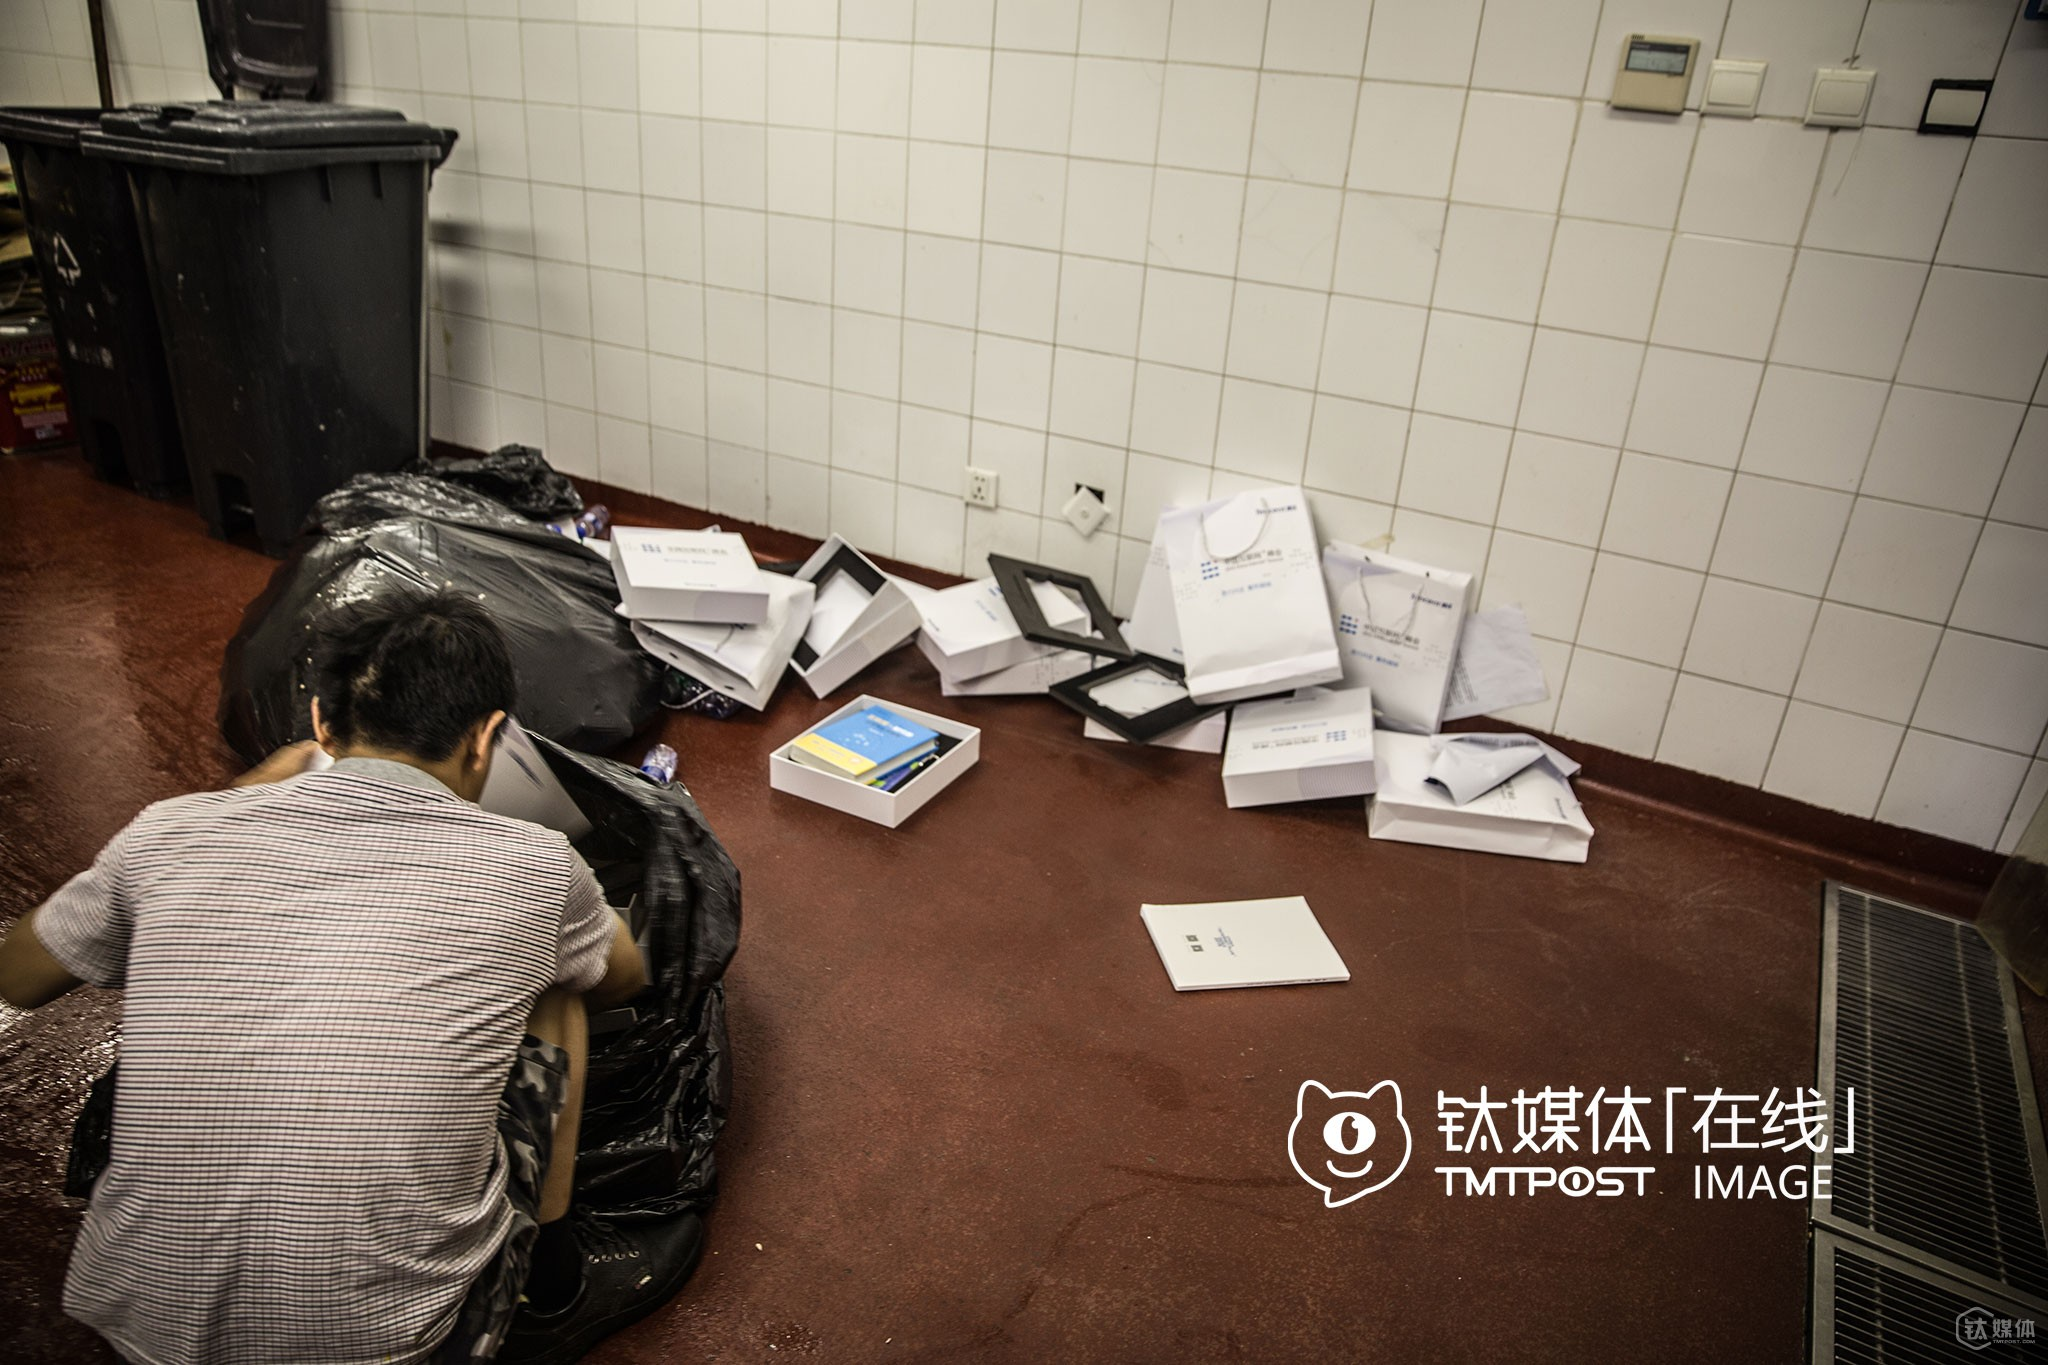 "It was the B2 junk room of China World Trade Center Tower 3, Beijing. After an innovation conference ended, the building cleaner collected lots of paper bags, gifts from the venue. ""There are lots of books, but they are meaningless because I can't understand them. I shall sell all these stuffs to the garbage man who's to arrive soon,"" he explained."